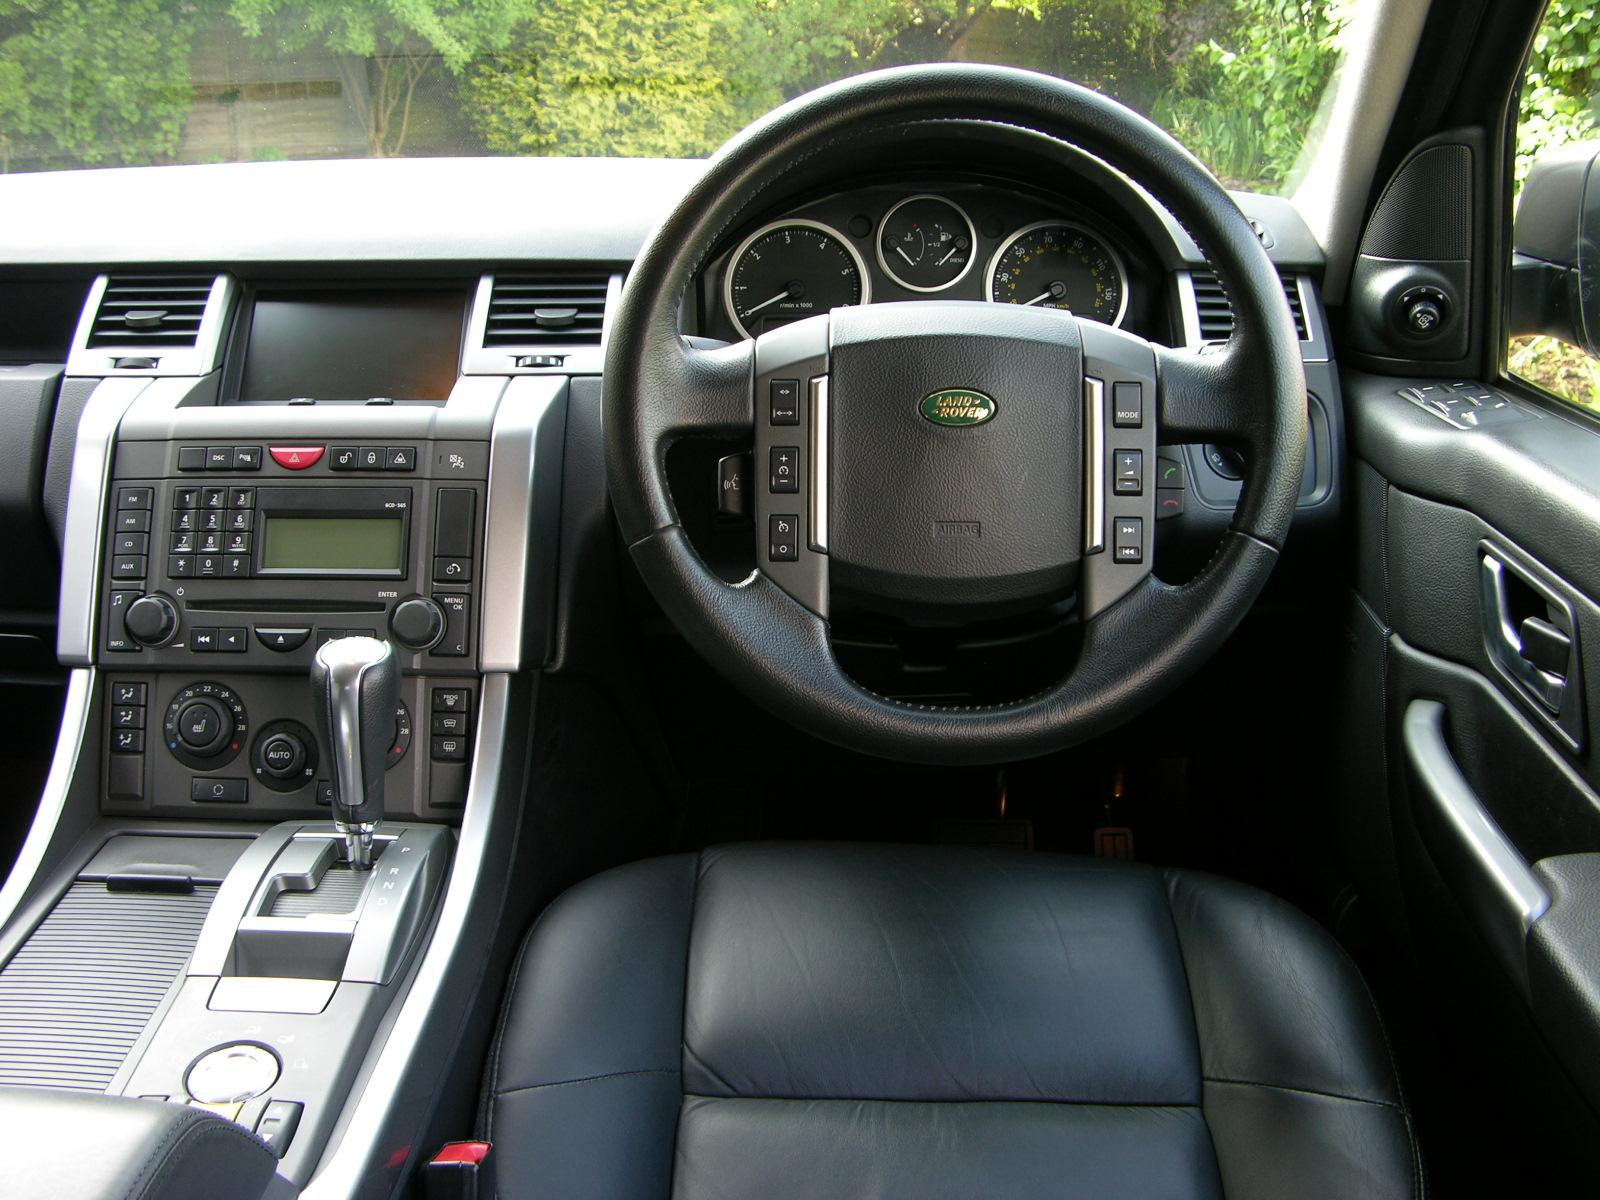 2007 range rover sport interior images galleries with a bite. Black Bedroom Furniture Sets. Home Design Ideas